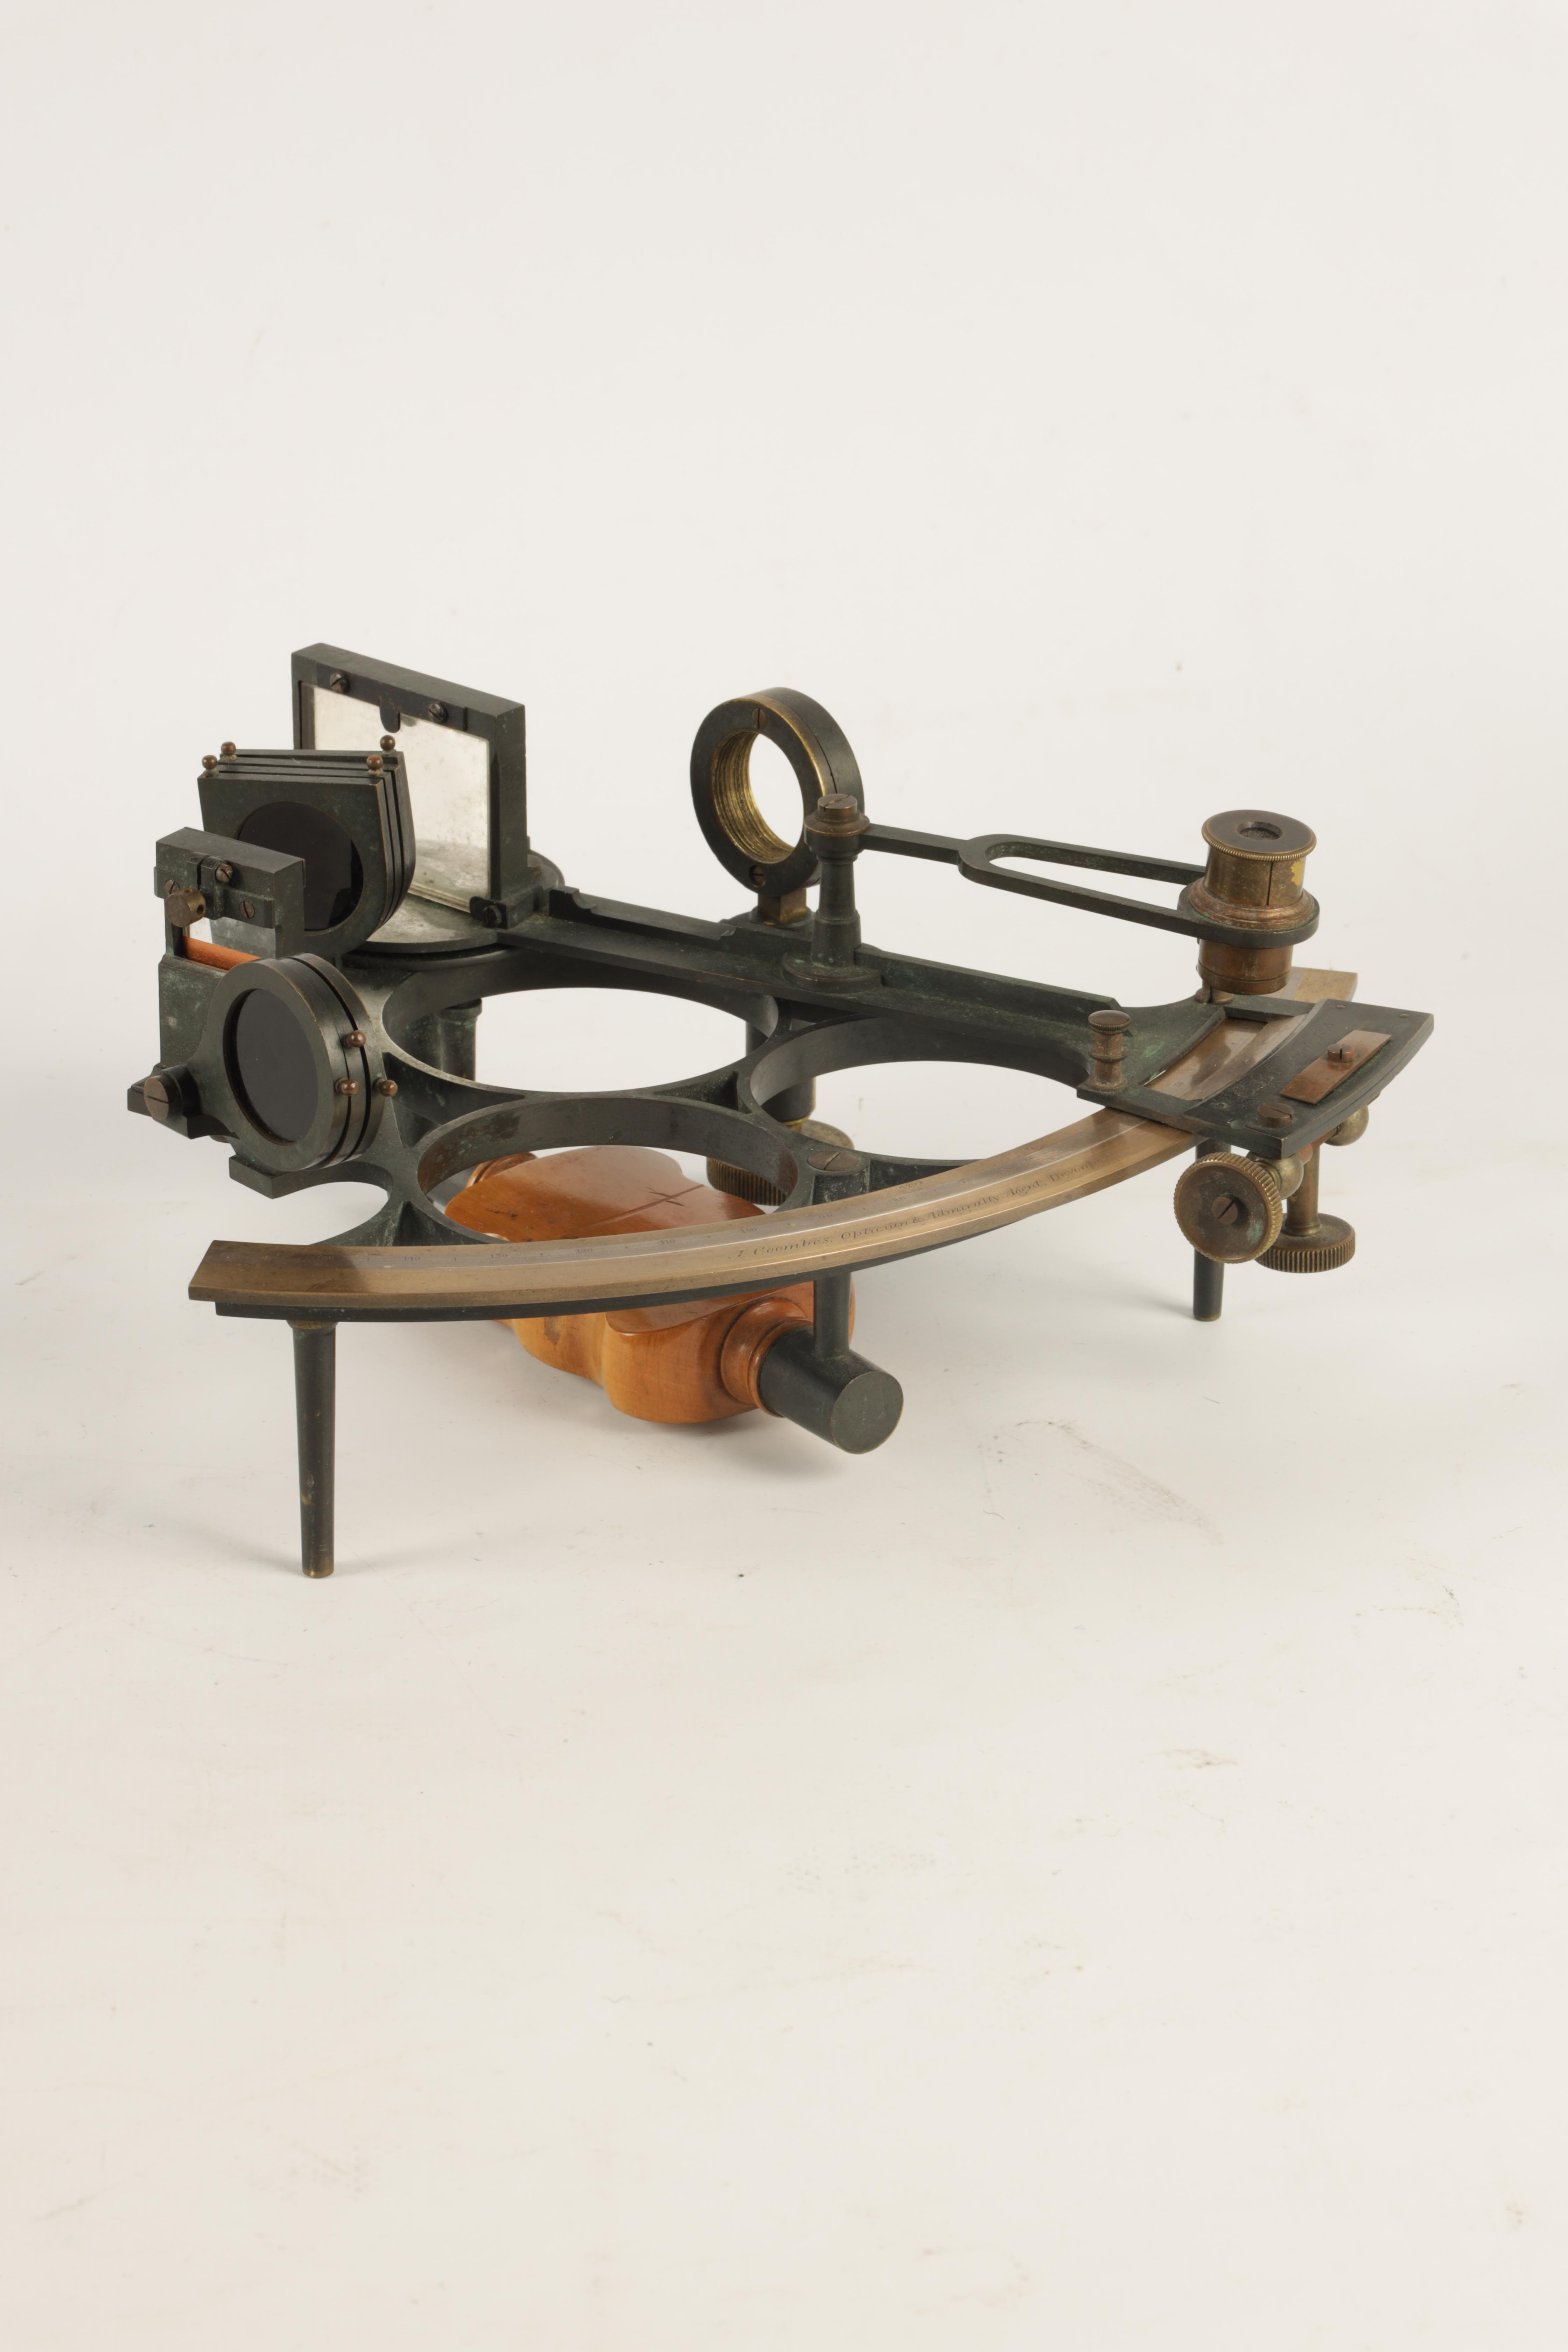 J. COOMBES, OPTICIAN & ADMIRALTY AGENT, DEVONPORT. A LATE 19TH CENTURY BRASS FRAMED SEXTANT IN - Image 2 of 17